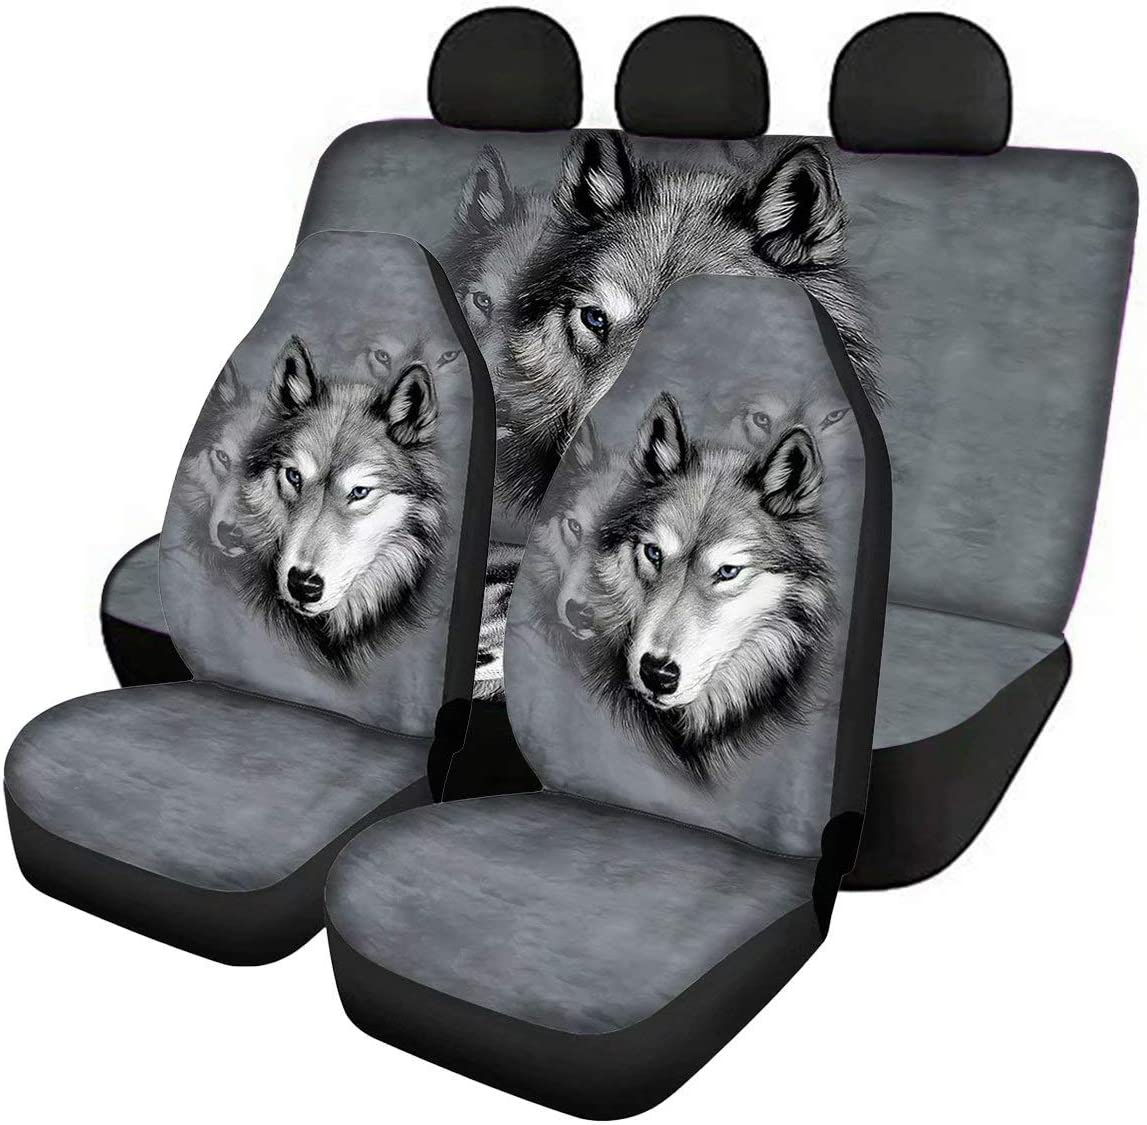 Pensura Gray Wolf Front and Rear Jacksonville Los Angeles Mall Mall Seat Bench Cover Back Only Full